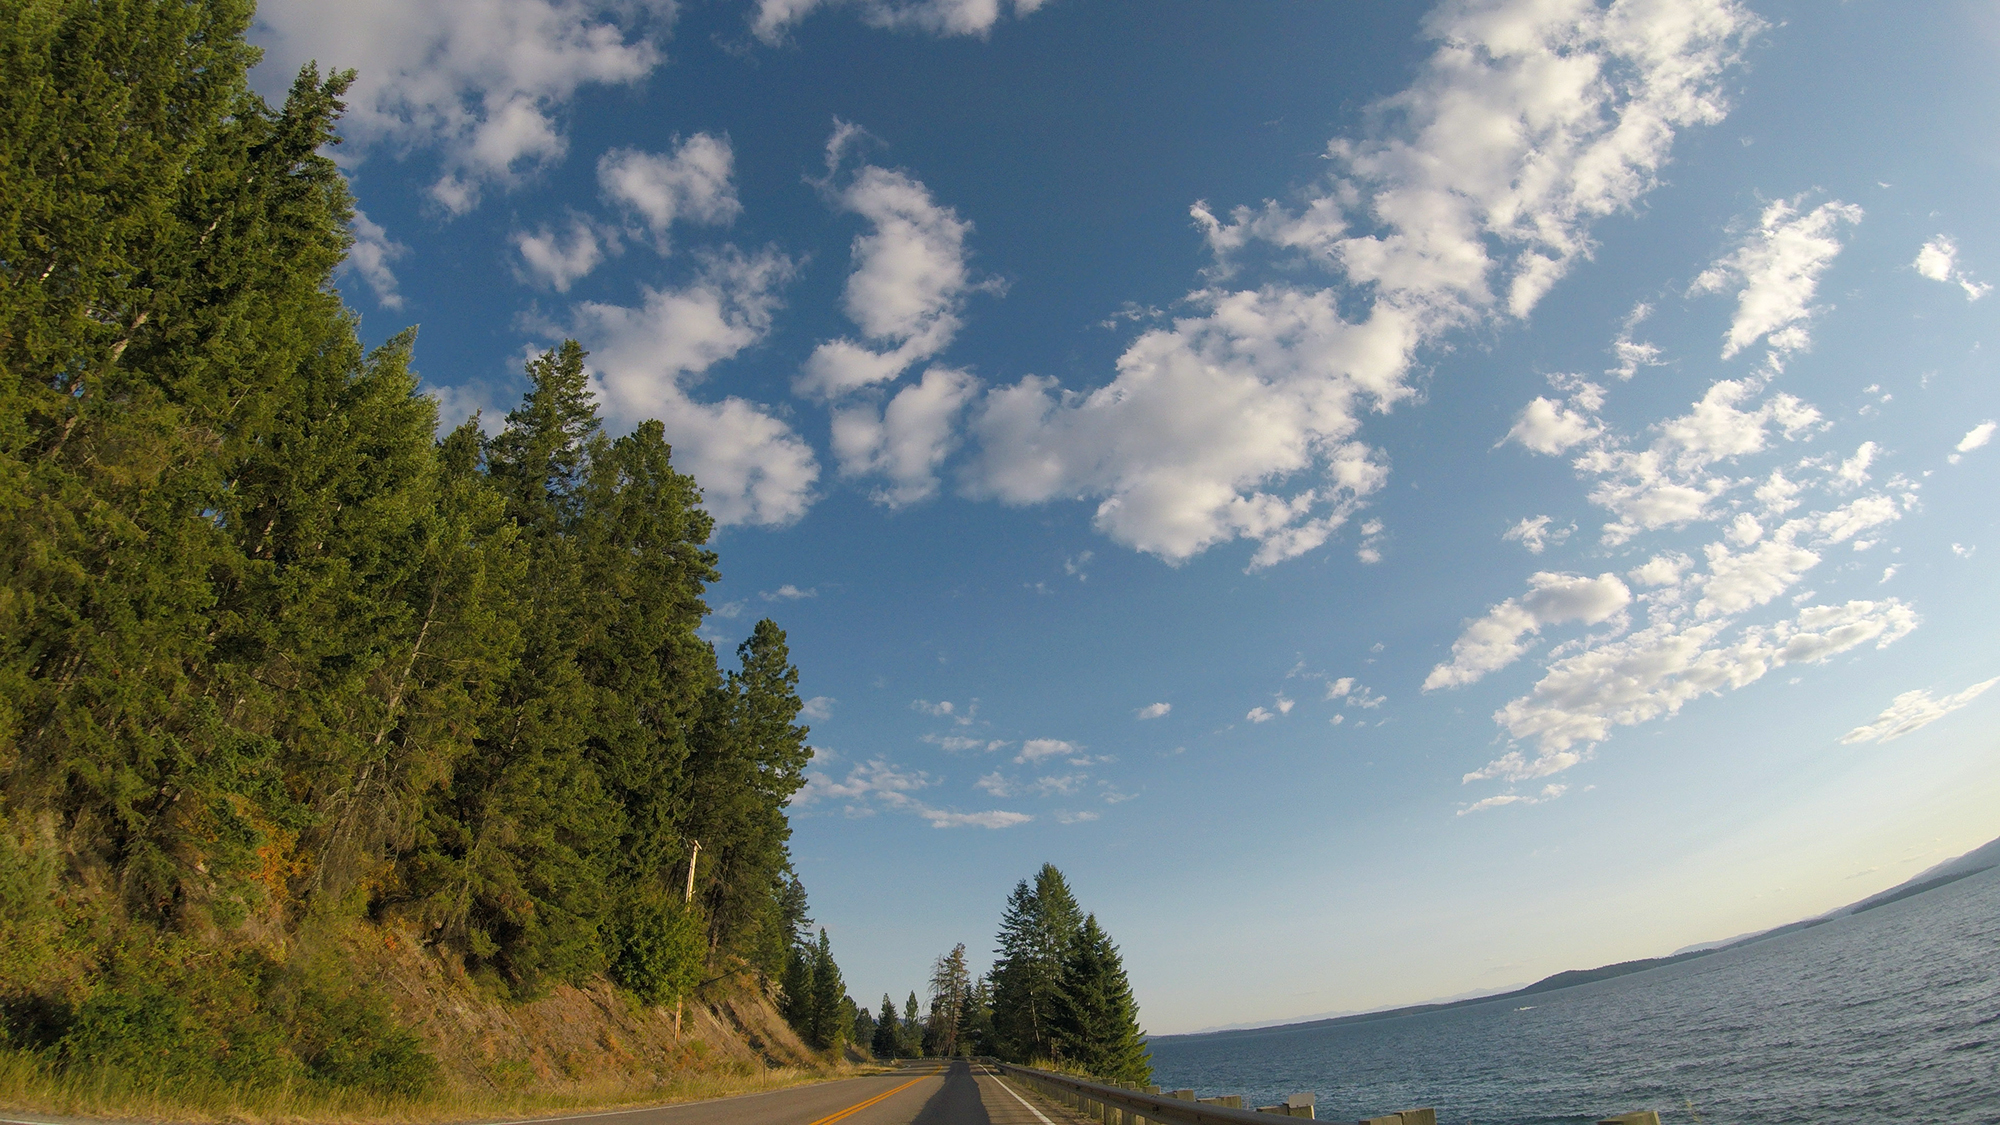 Driving along Flathead Lake